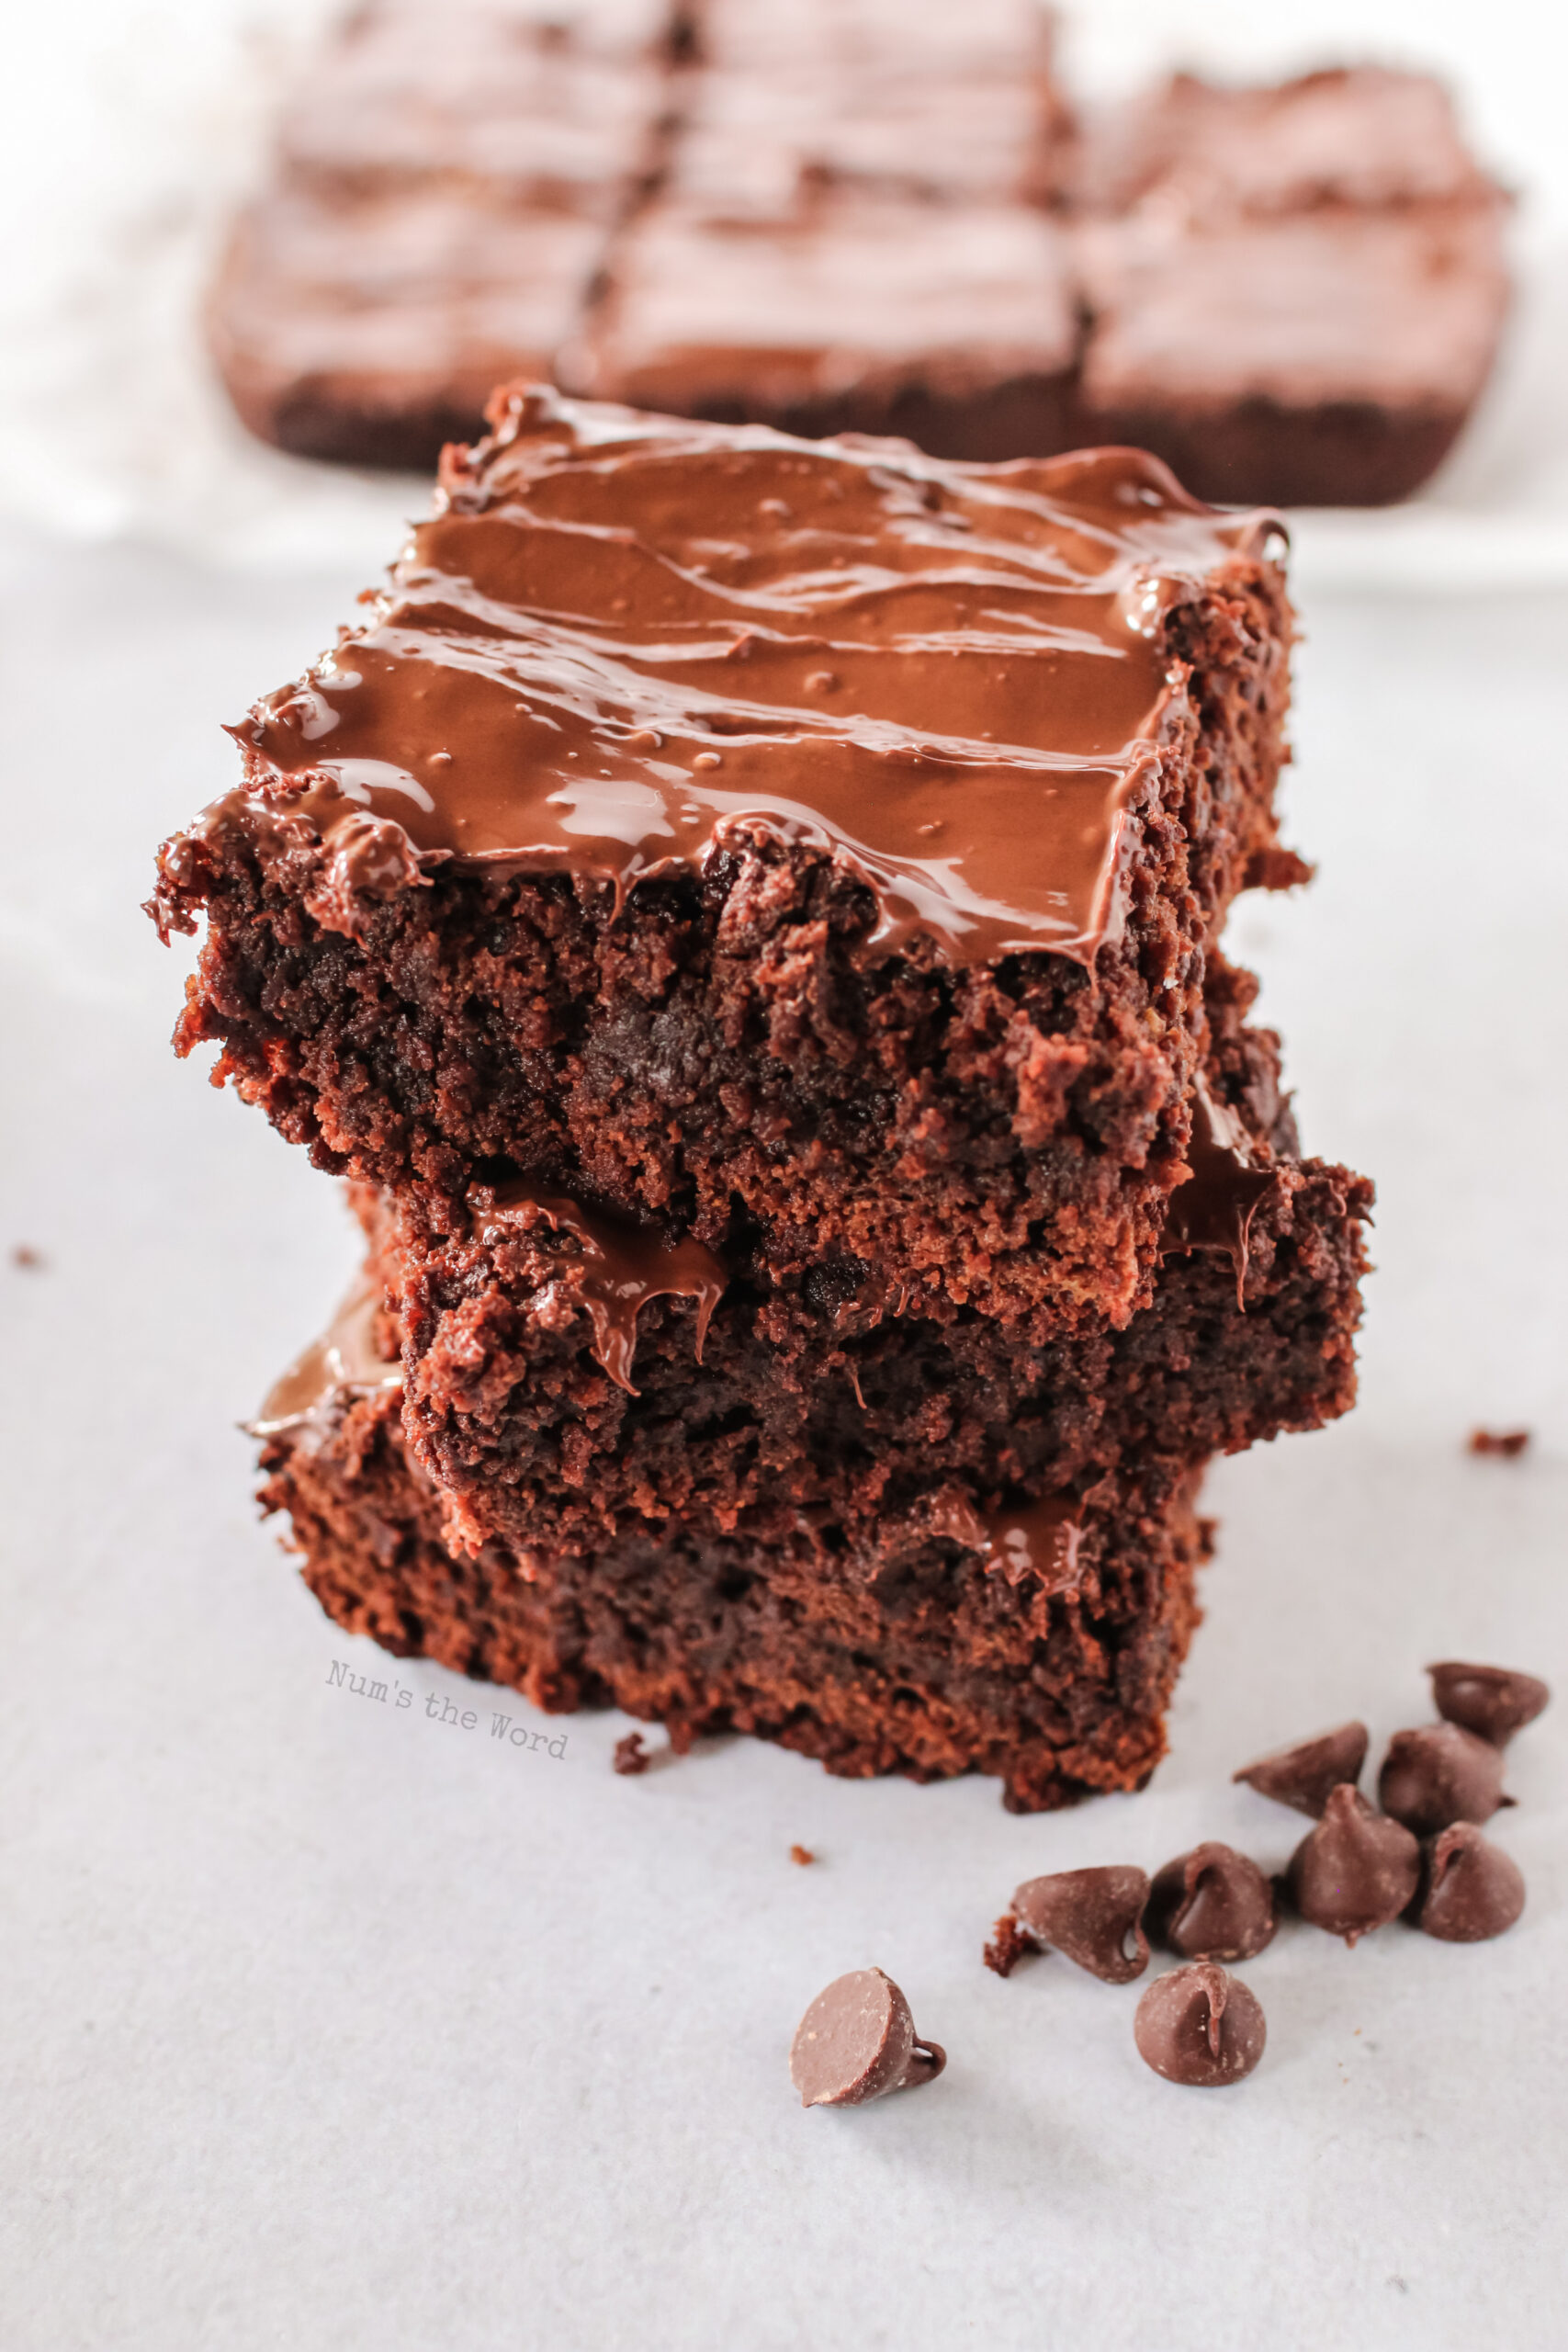 3 brownies stacked on top of each other